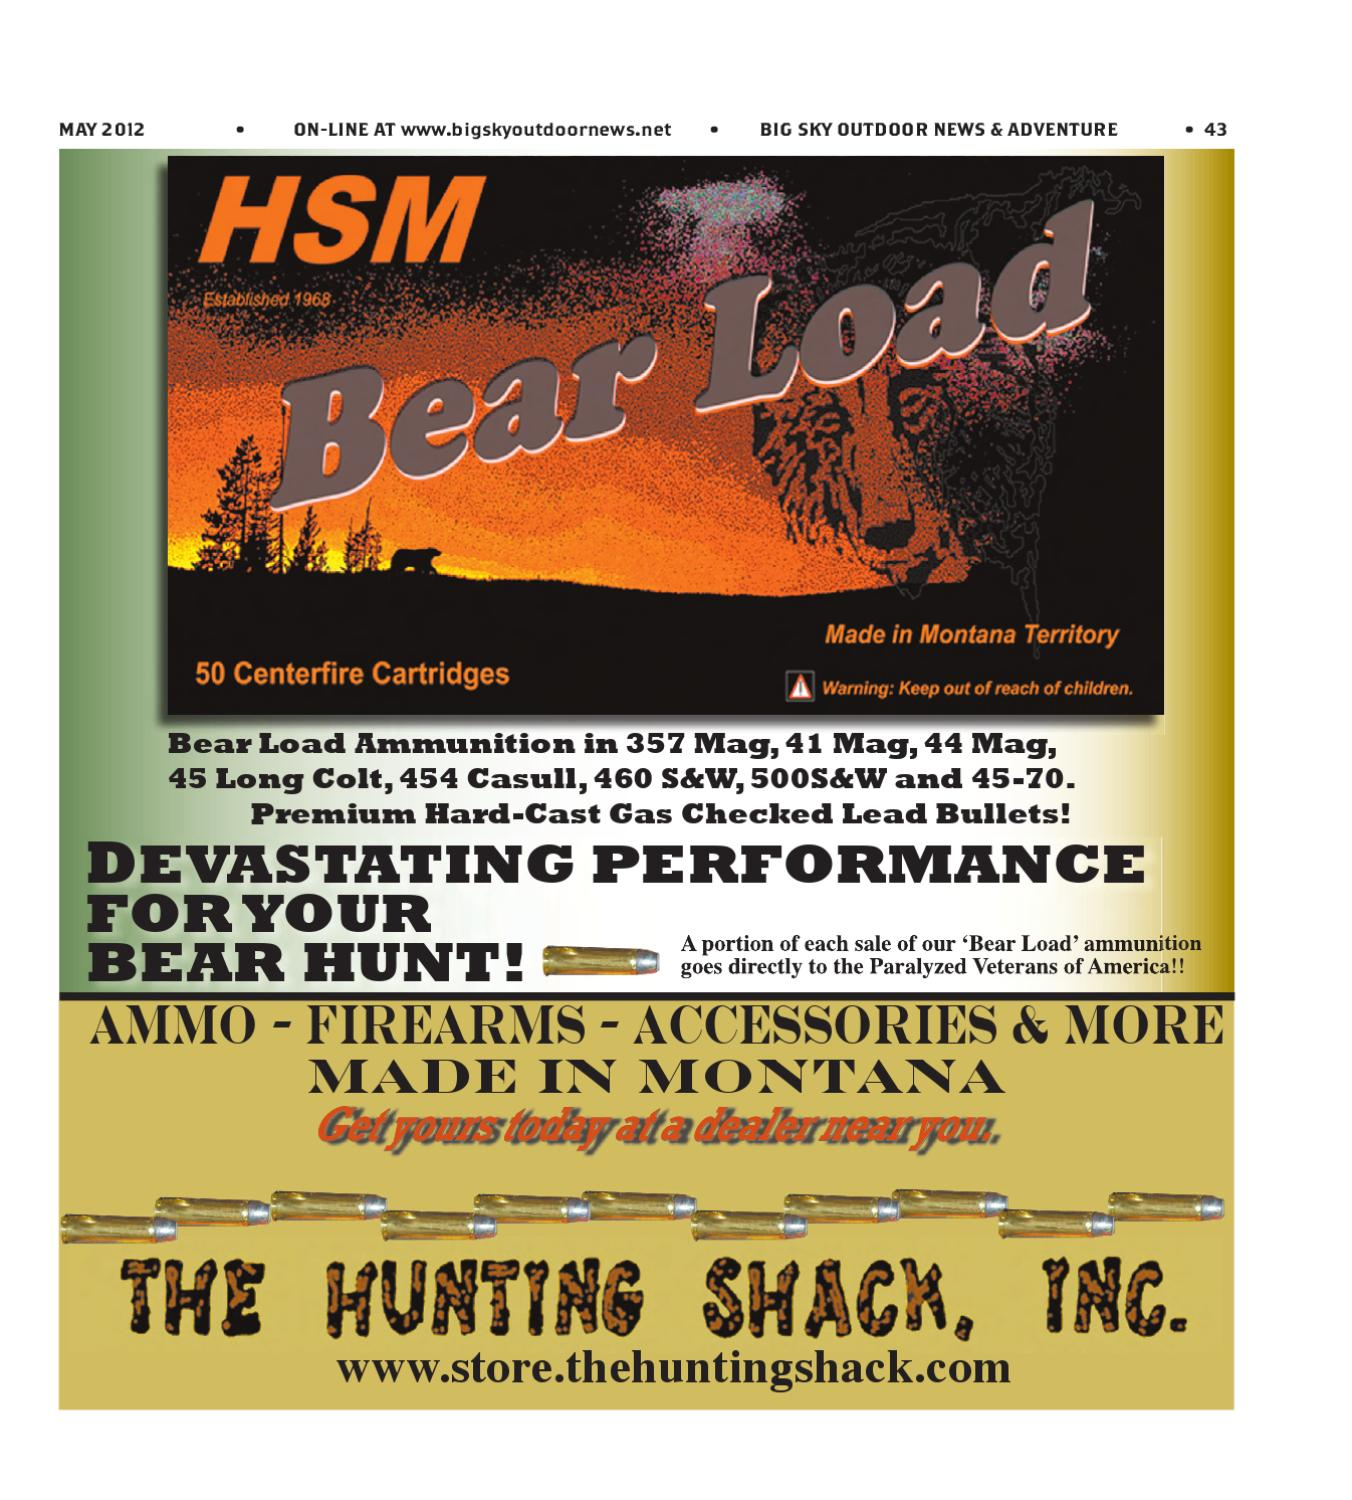 Big Sky Outdoor News & Adventure - May 2012 by Amy Haggerty